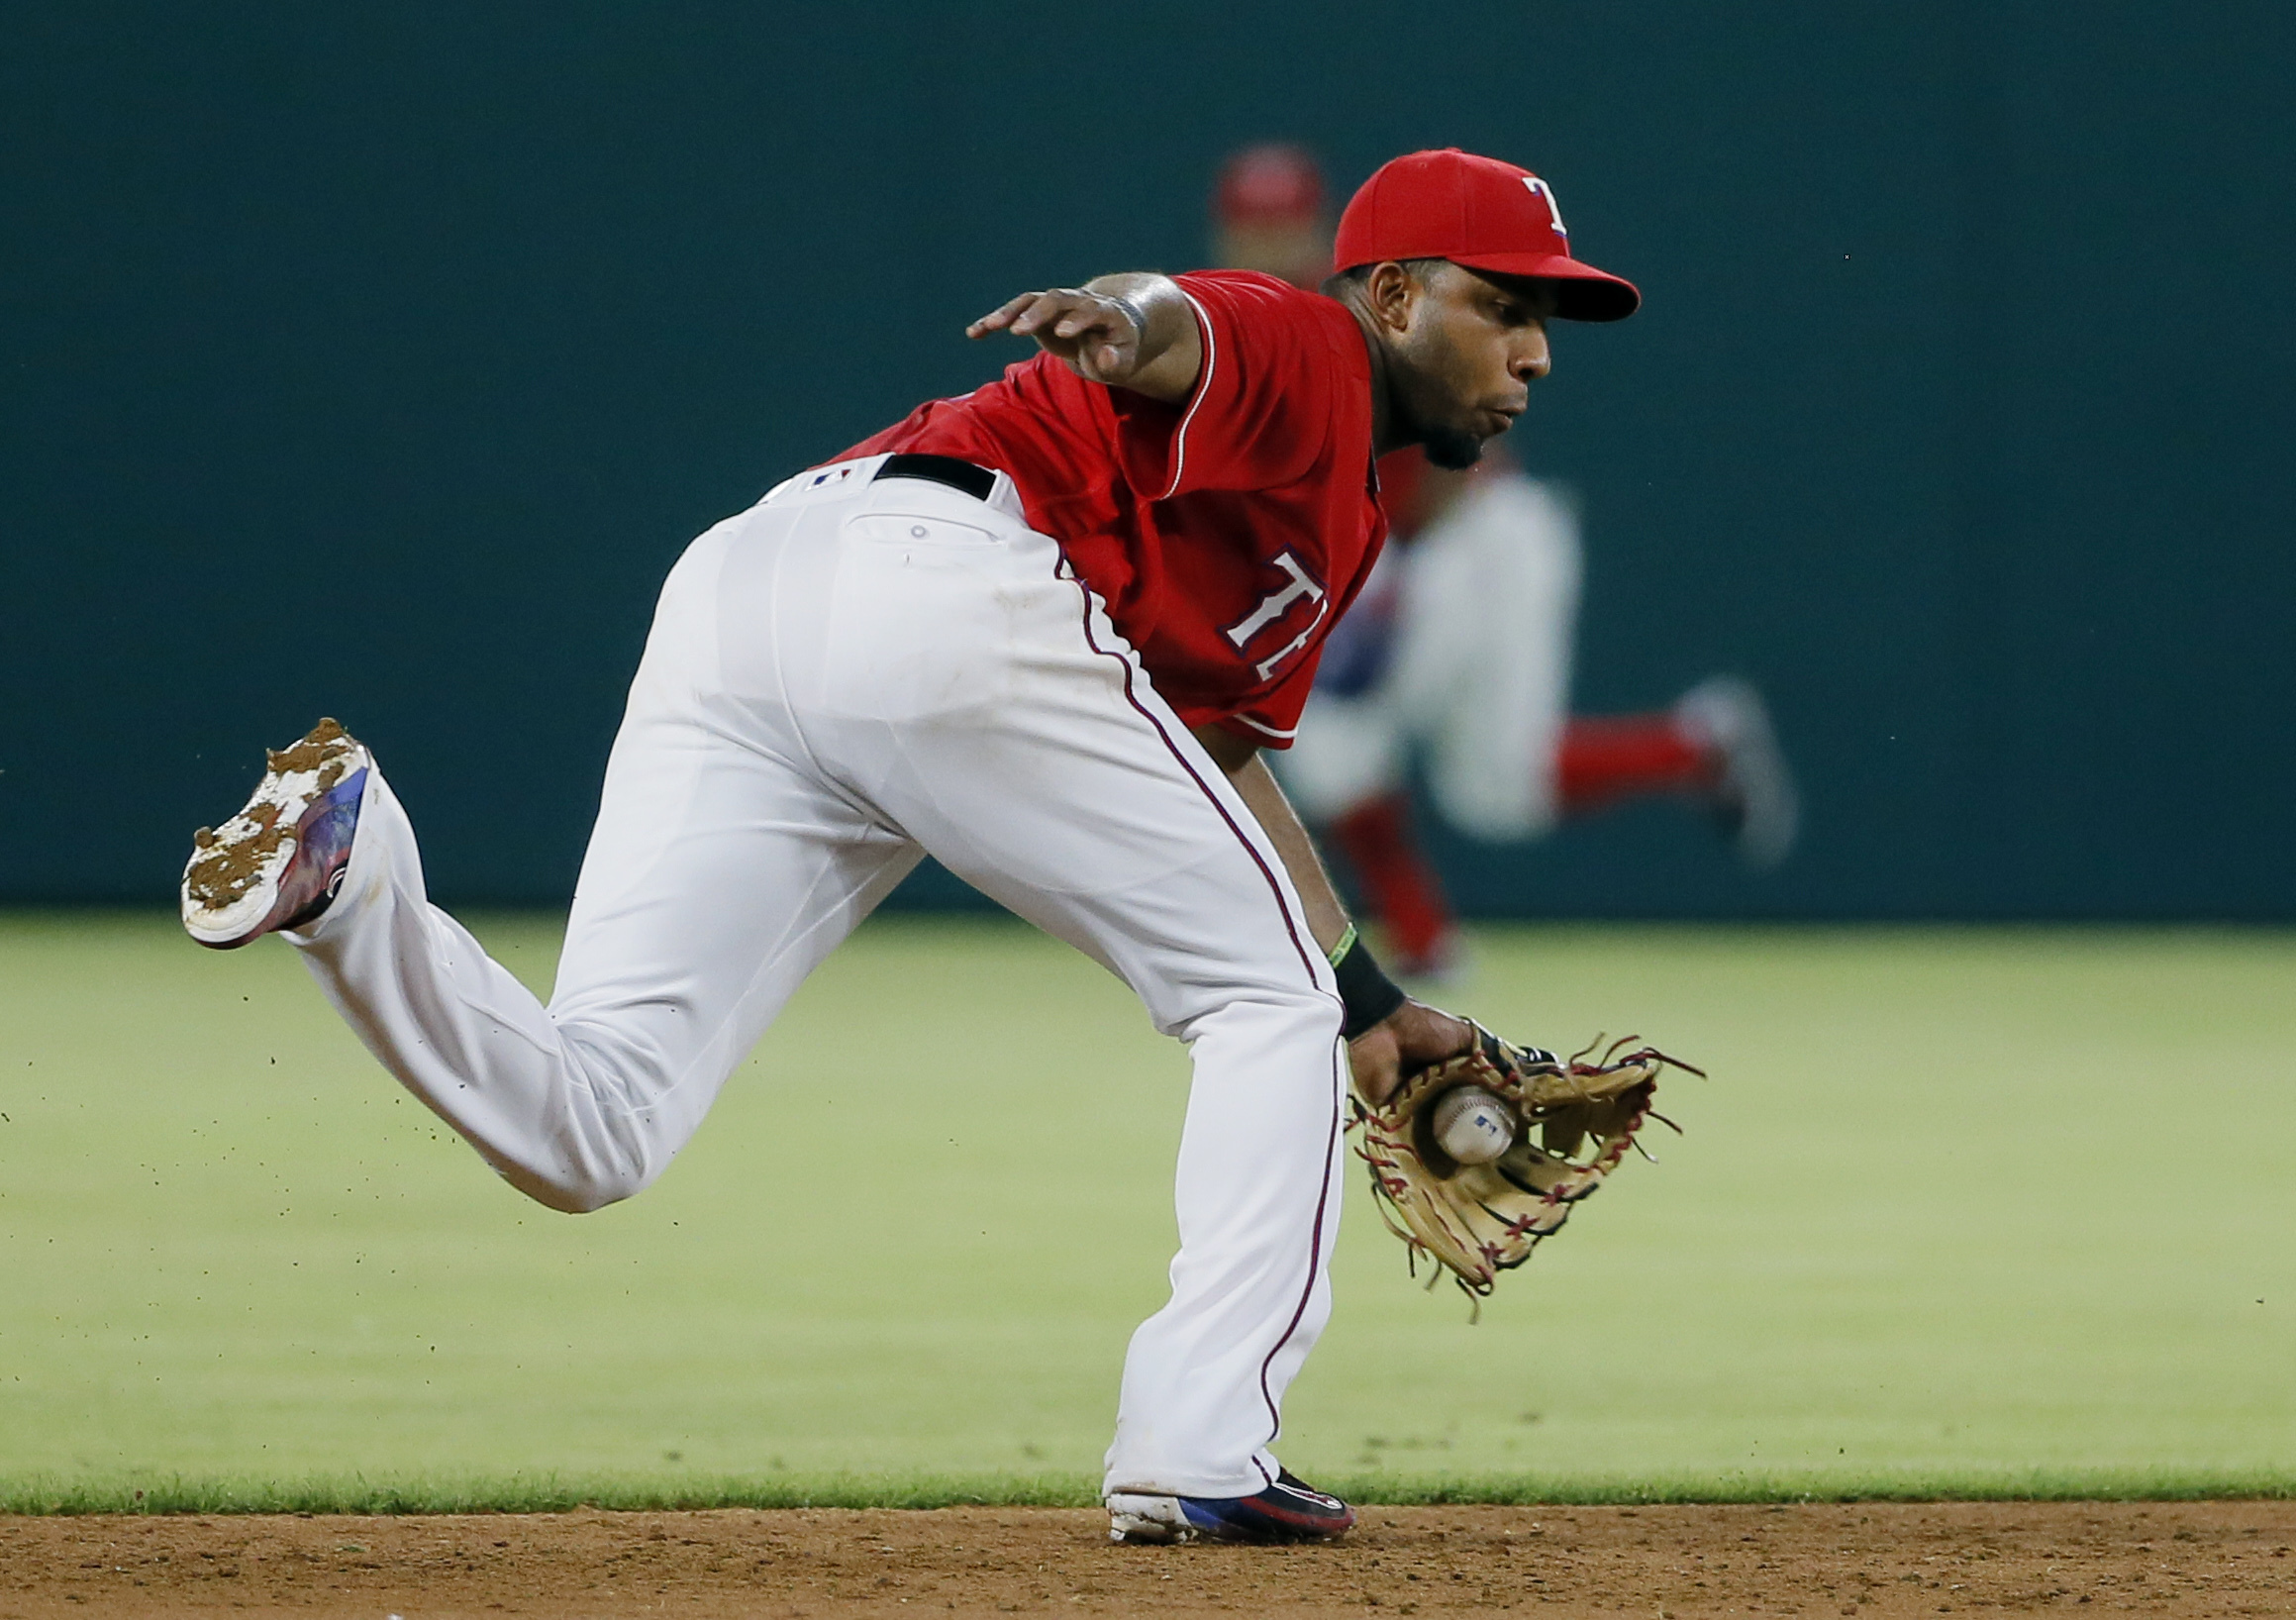 Texas Rangers shortstop Elvis Andrus reaches to his left to field a ground-out by Seattle Mariners' Franklin Gutierrez in the third inning of a baseball game on, Saturday, June 4, 2016, in Arlington, Texas. (AP Photo/Tony Gutierrez)